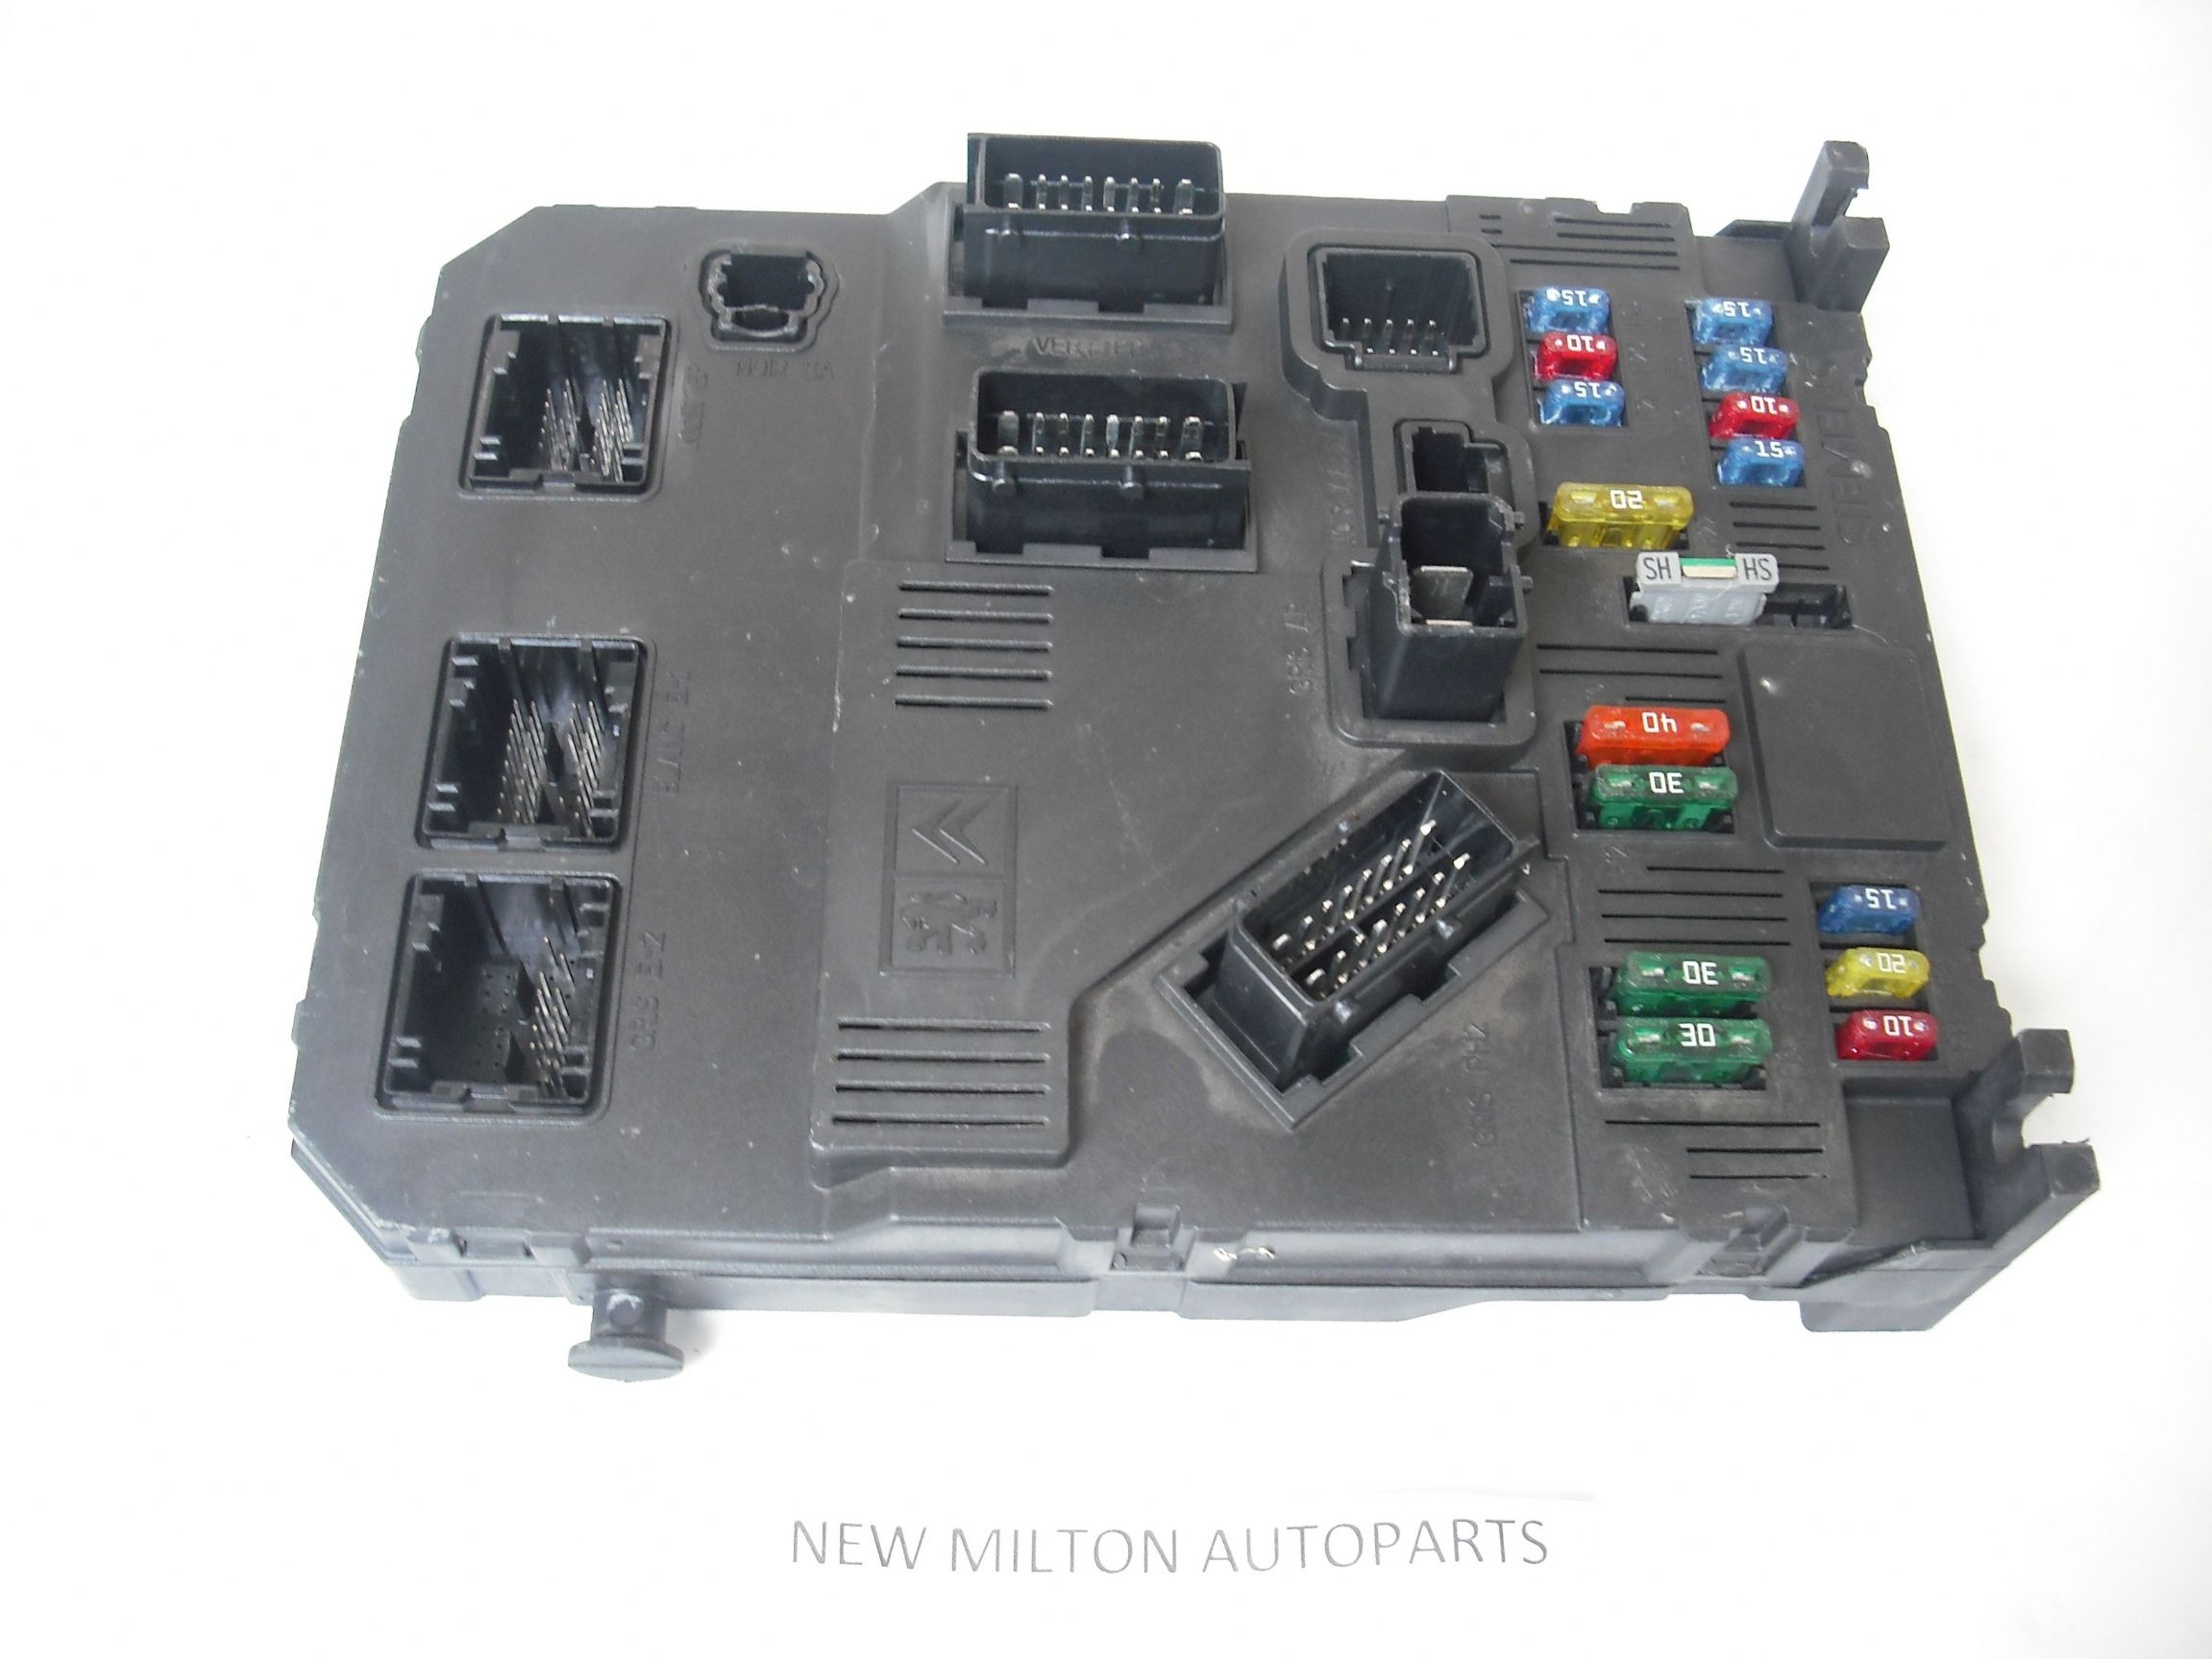 Volvo V60 Fuse Box Location Simple Guide About Wiring Diagram 2006 Lexus Gs300 S70 Buick Skylark 2005 S60